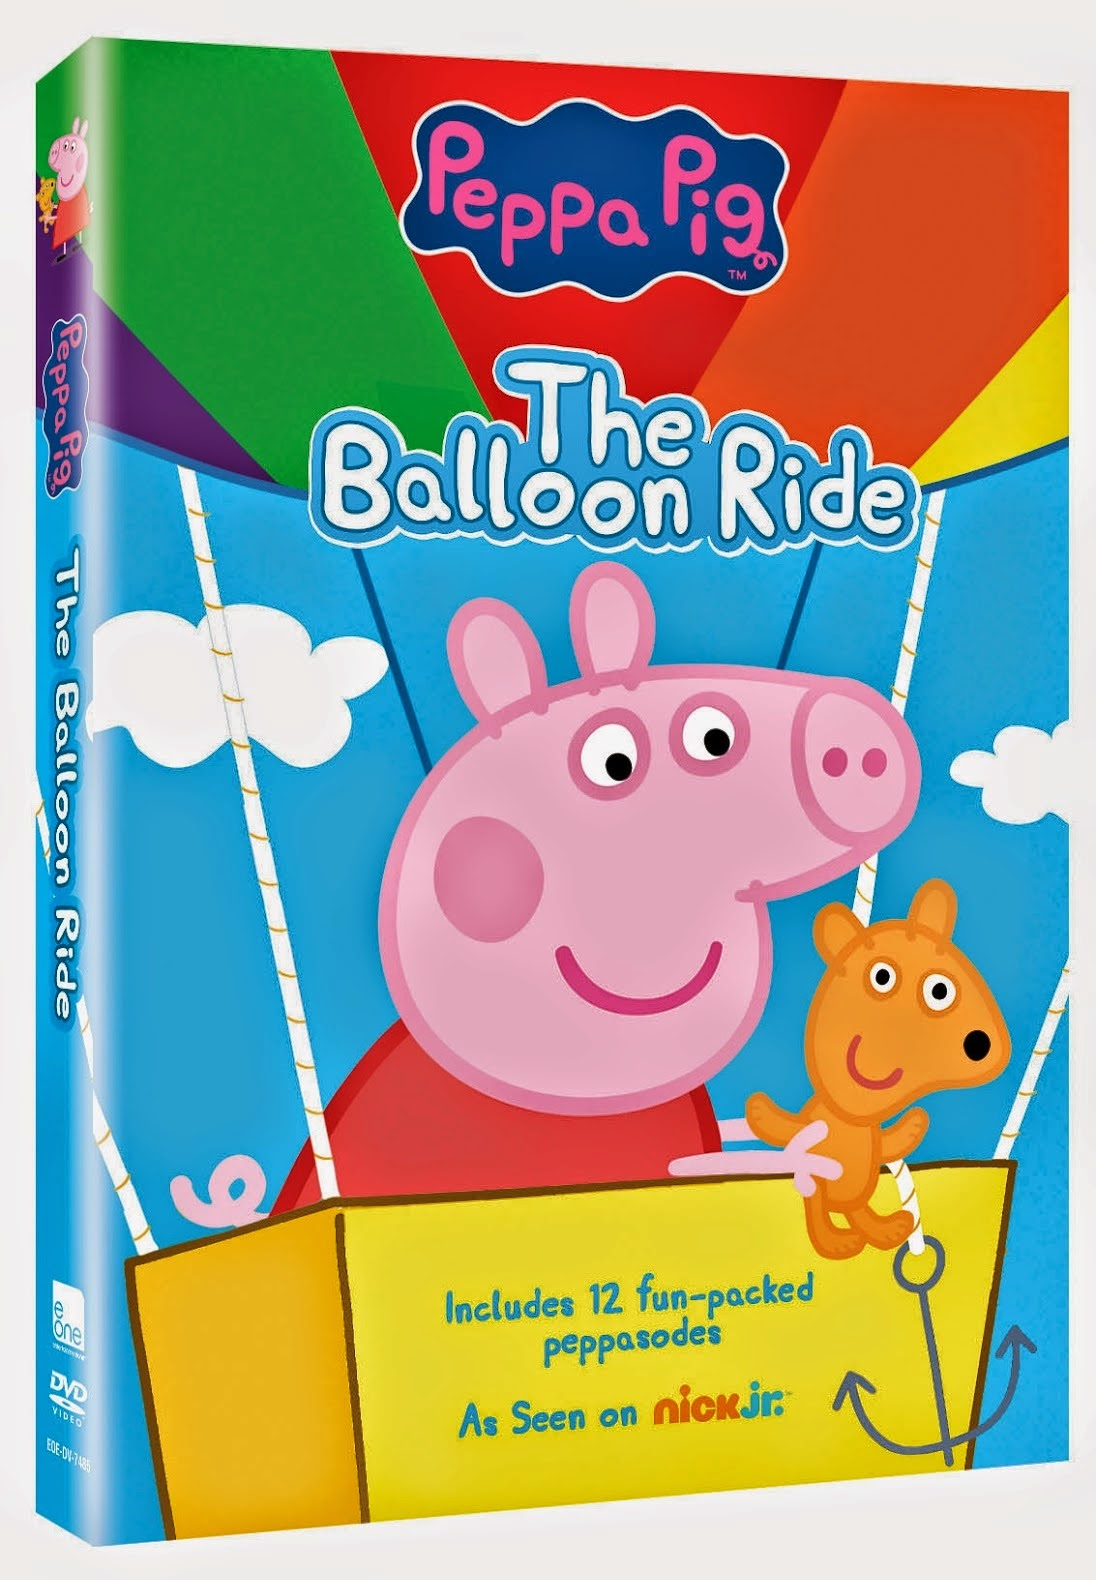 Peppa Pig The Balloon Ride